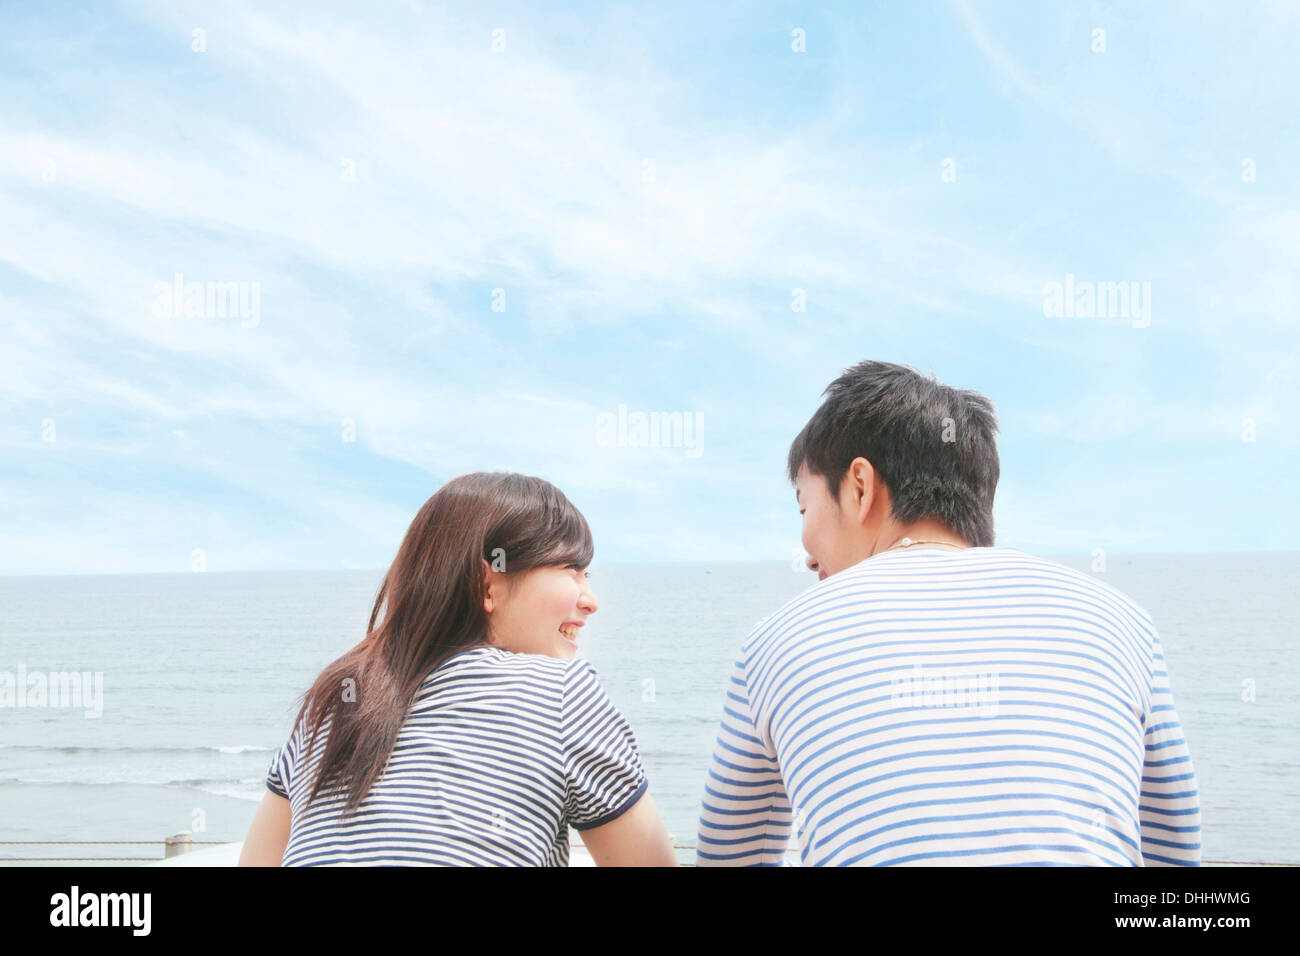 Rear view of couple at coast, face to face and laughing - Stock Image